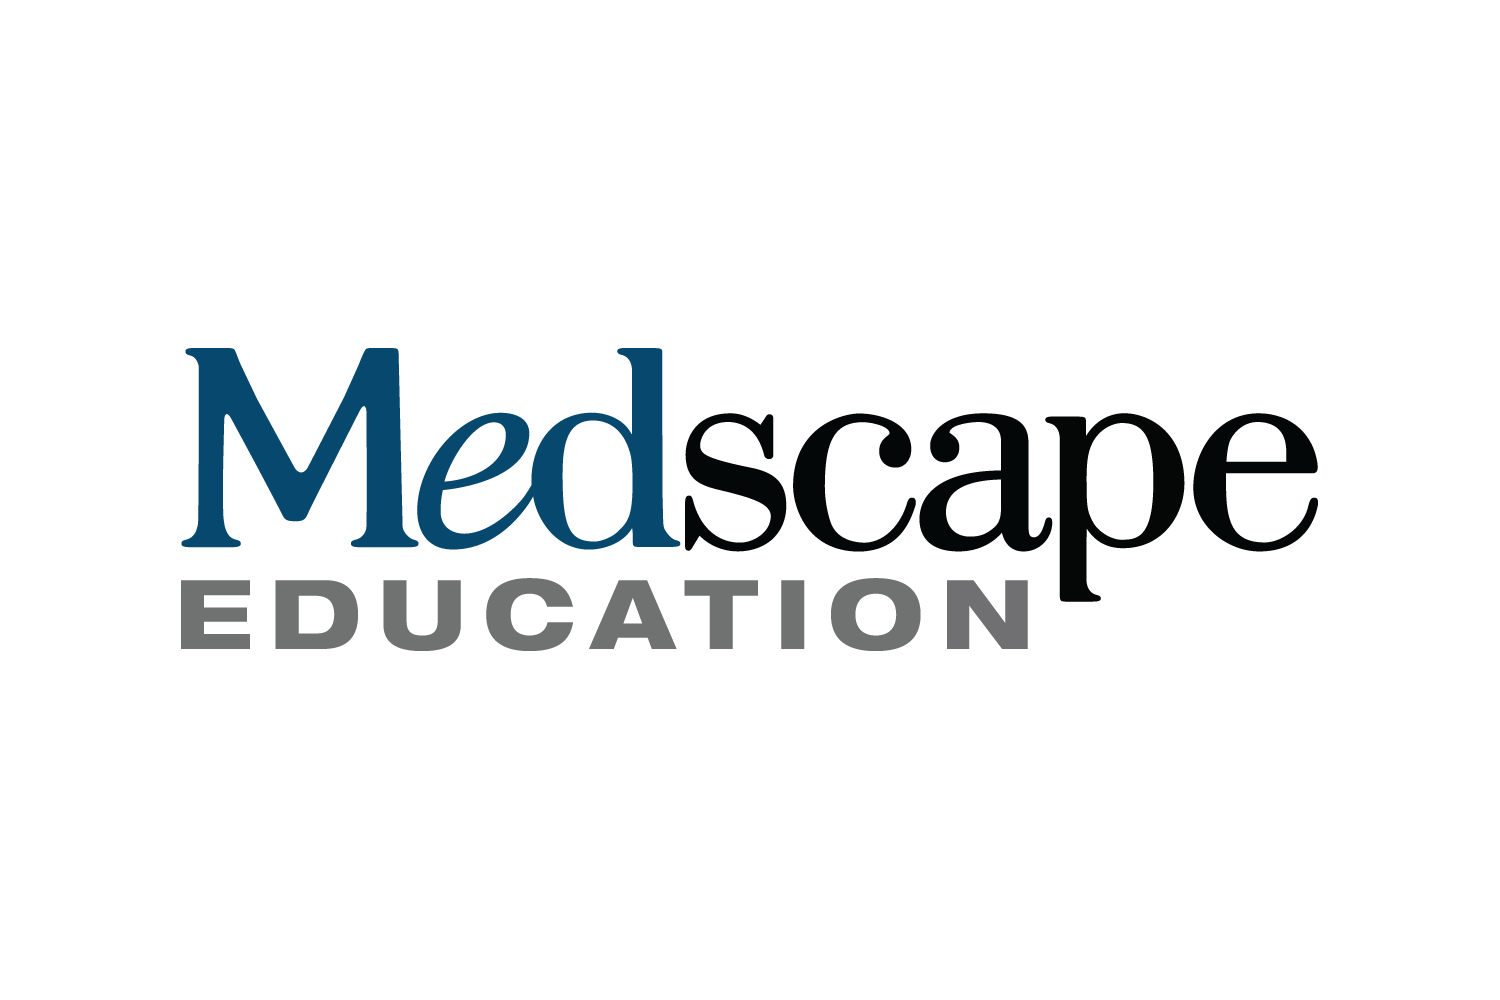 Medscape Education logo